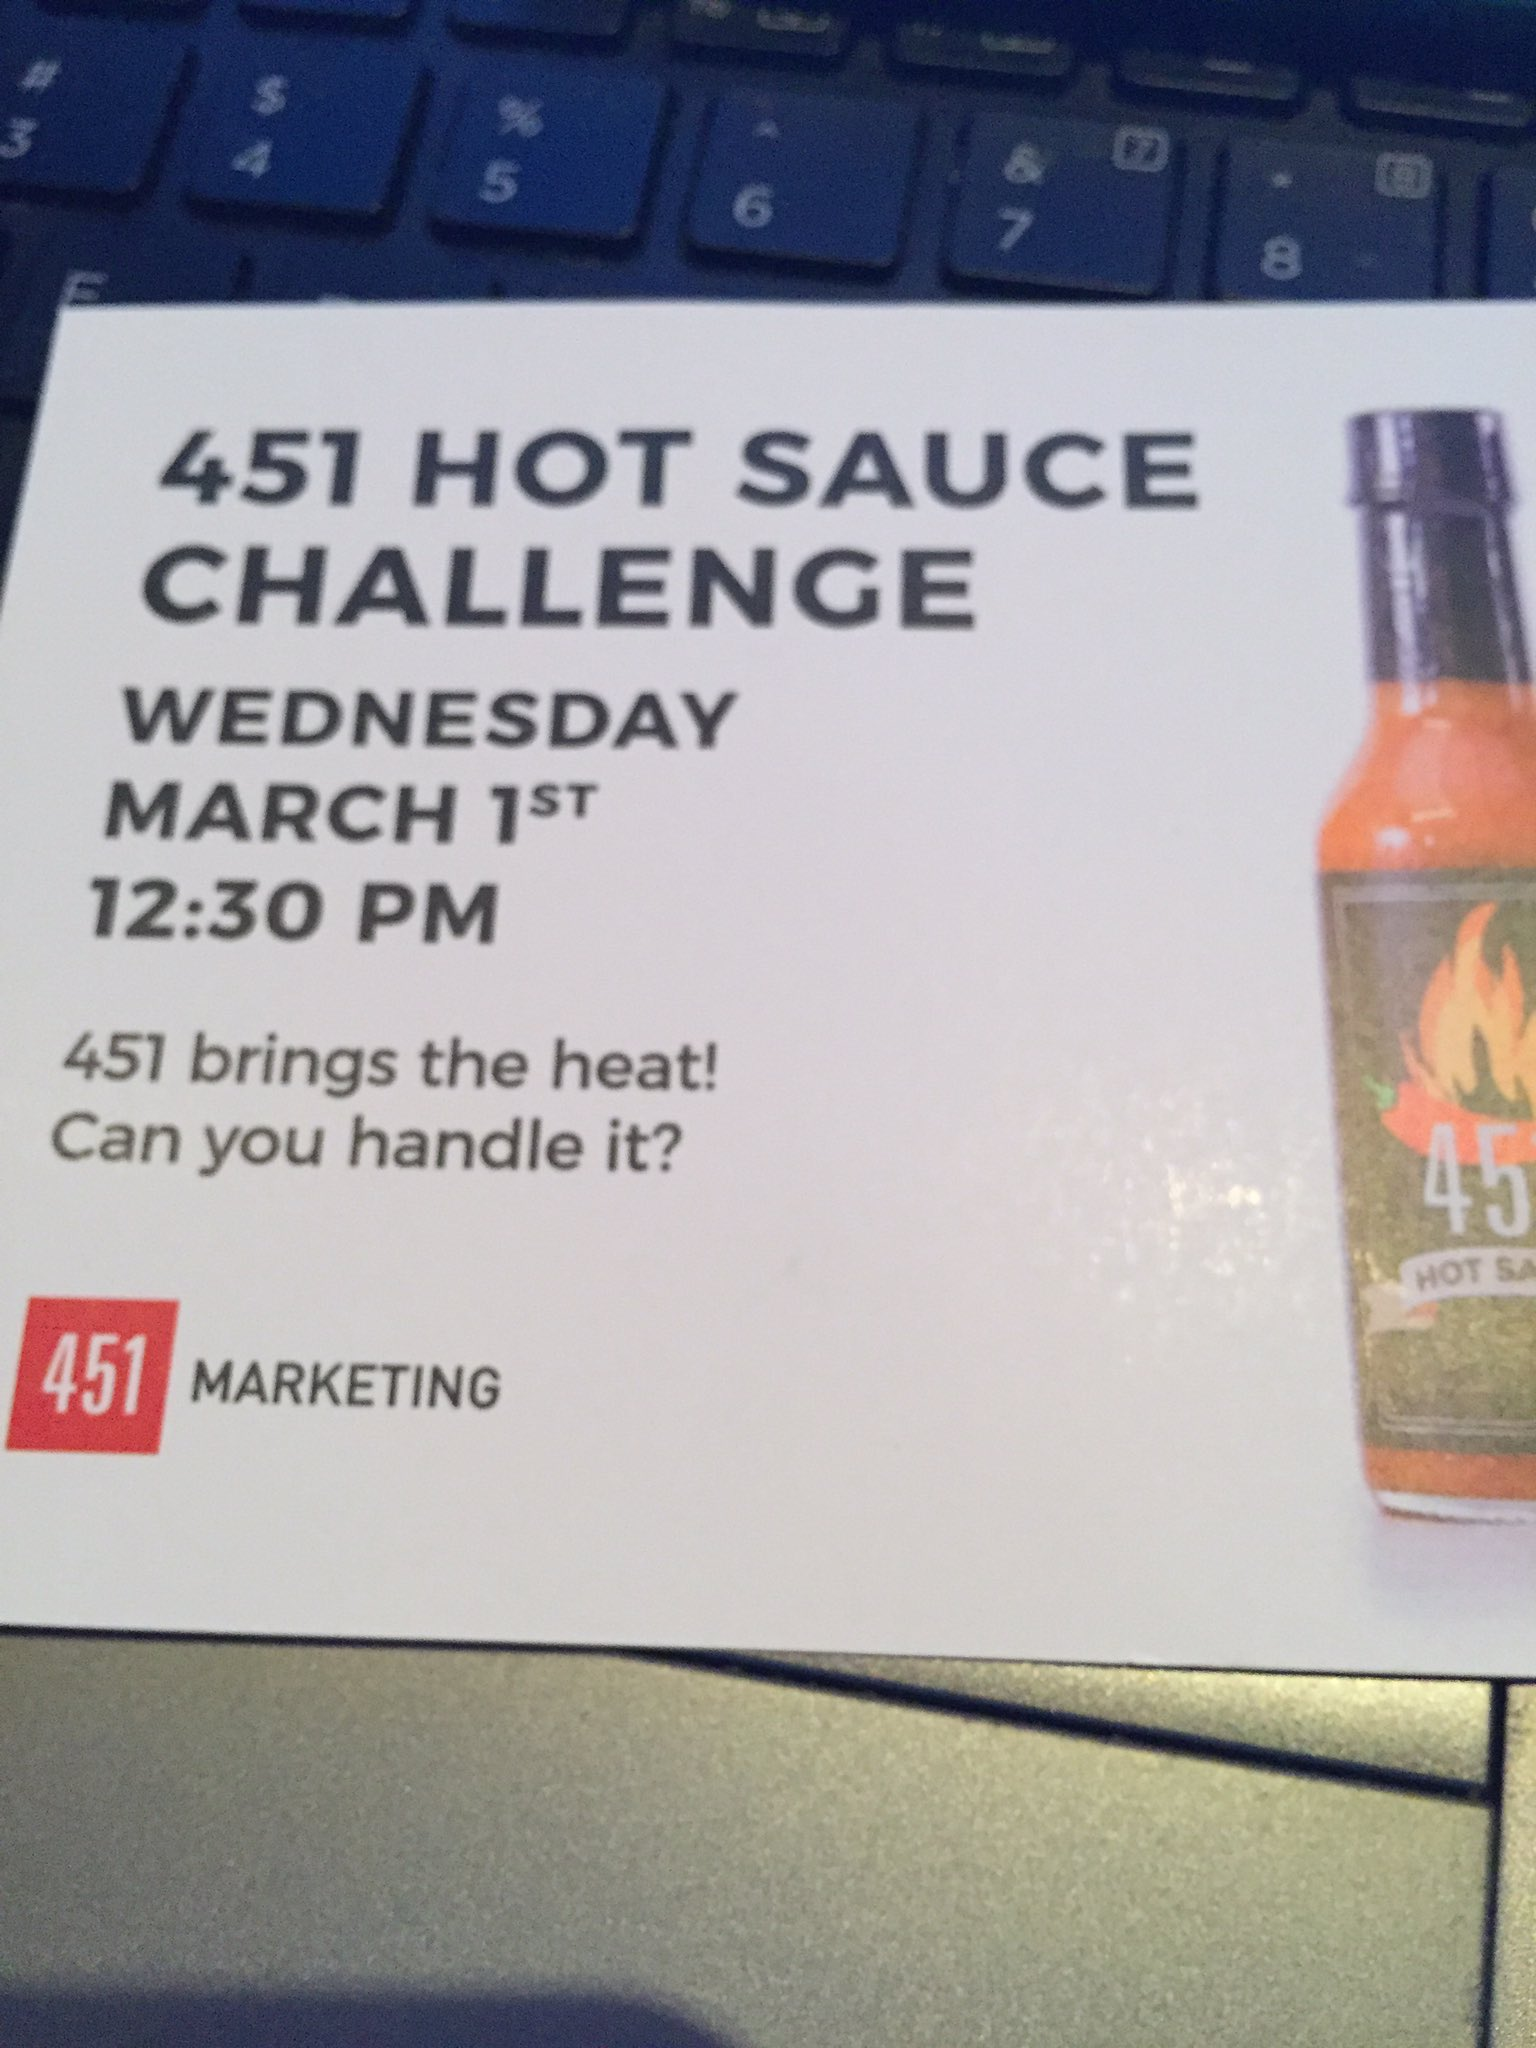 #nailedit hot sauce challenge completed 🙌🏼 @451Marketing #C3NY https://t.co/beWBRrP2rk